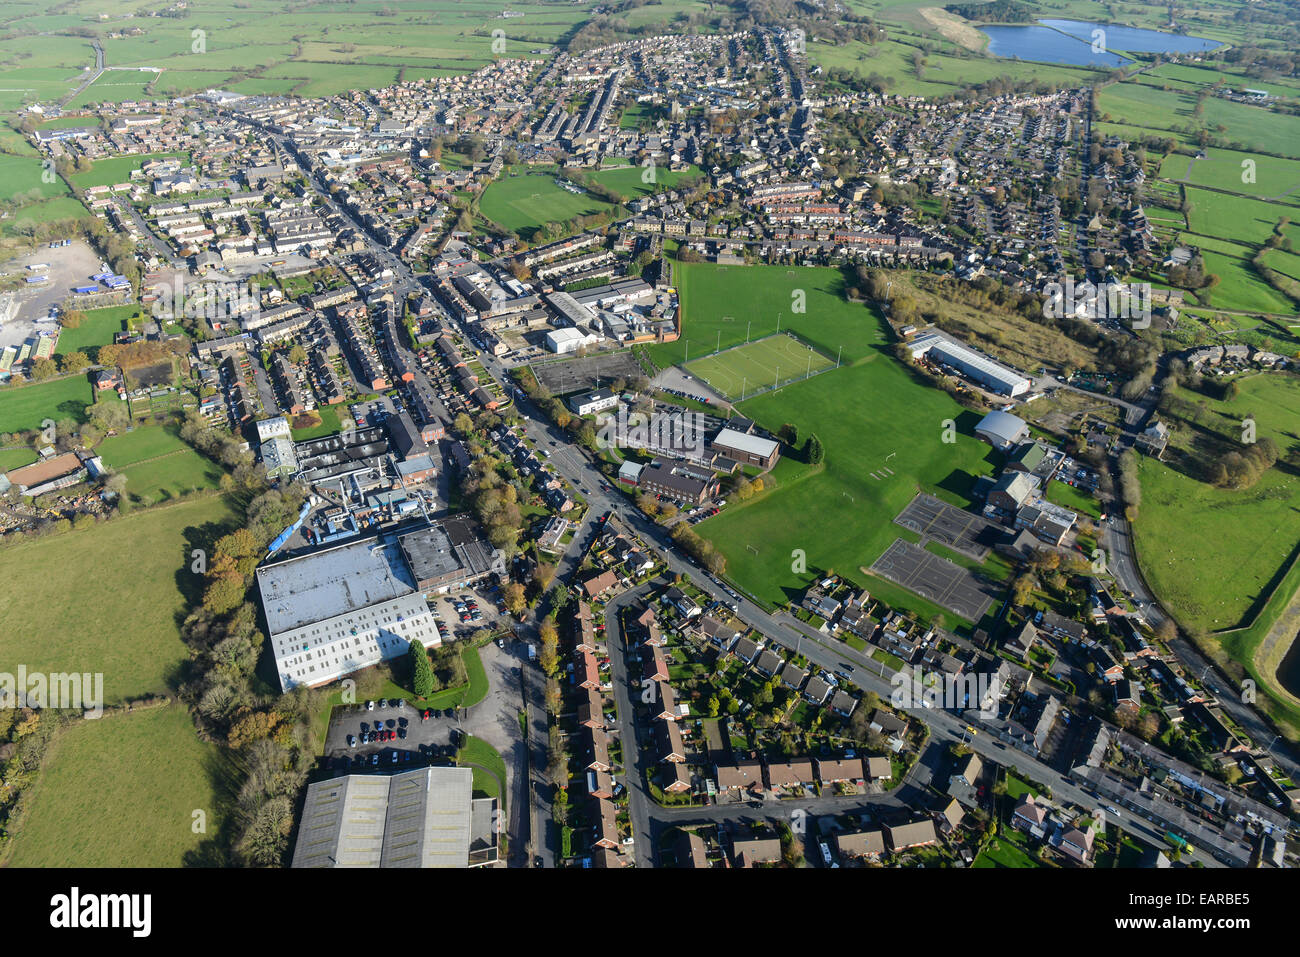 An aerial view of the Lancashire town of Longridge - Stock Image